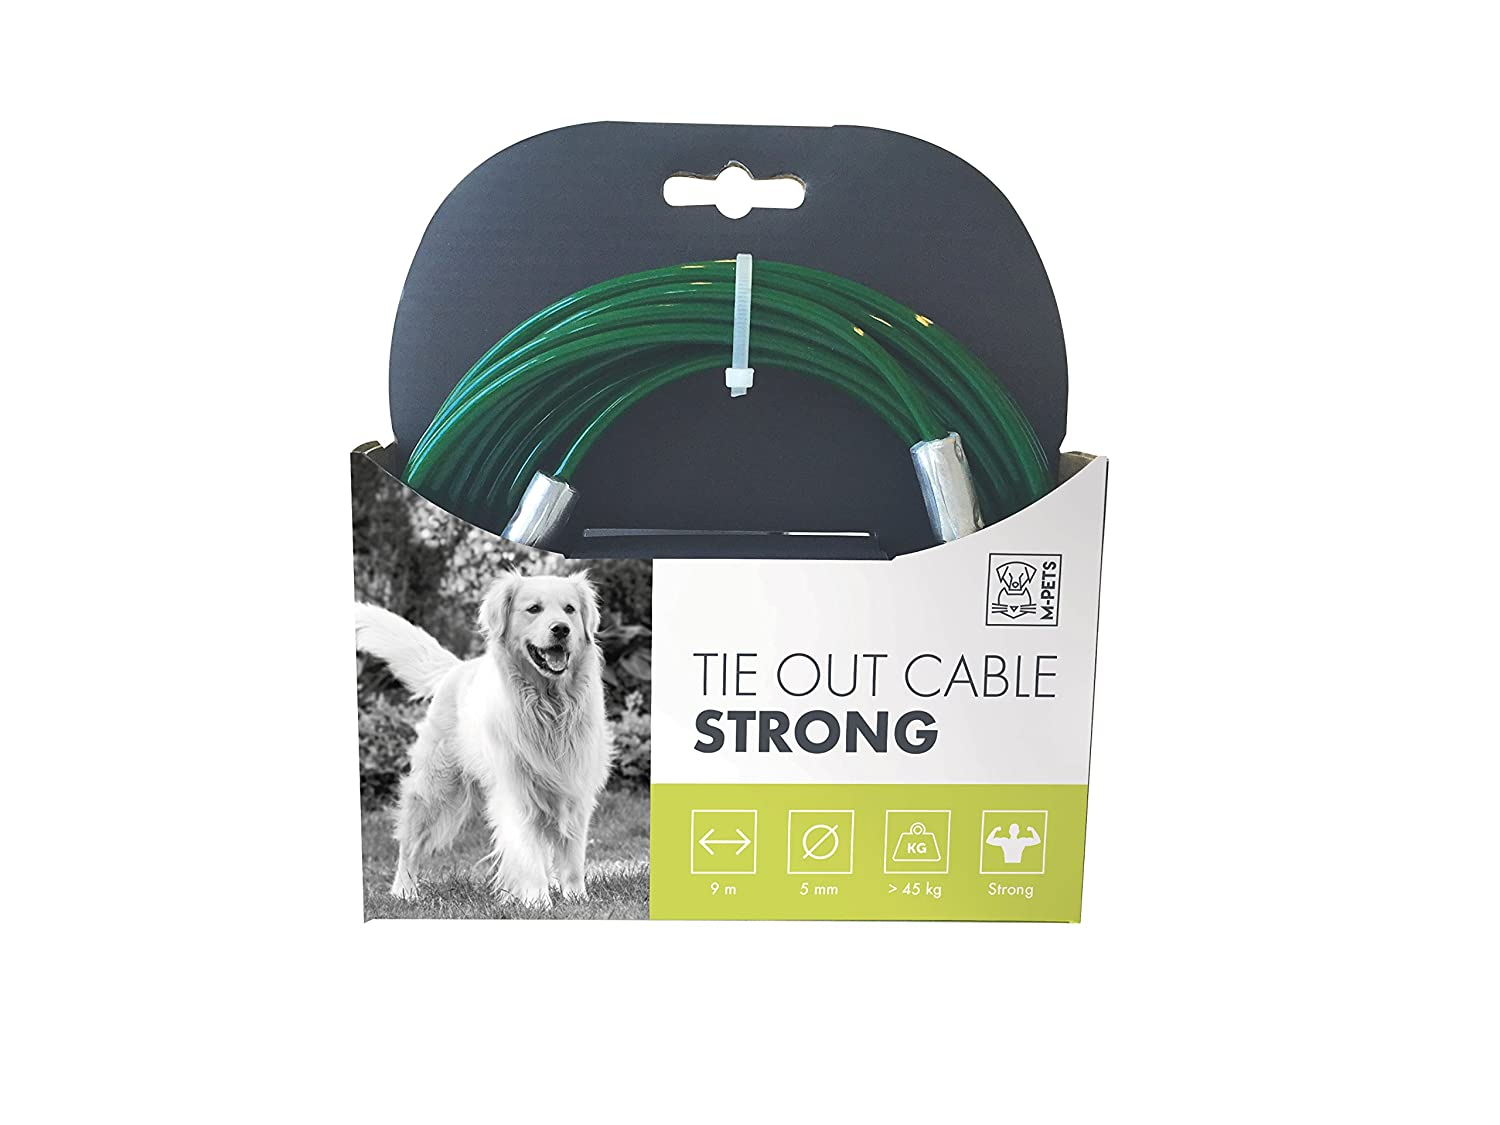 MPETS Câble d'attache Strong pour Chien - Lot de 2 10800399